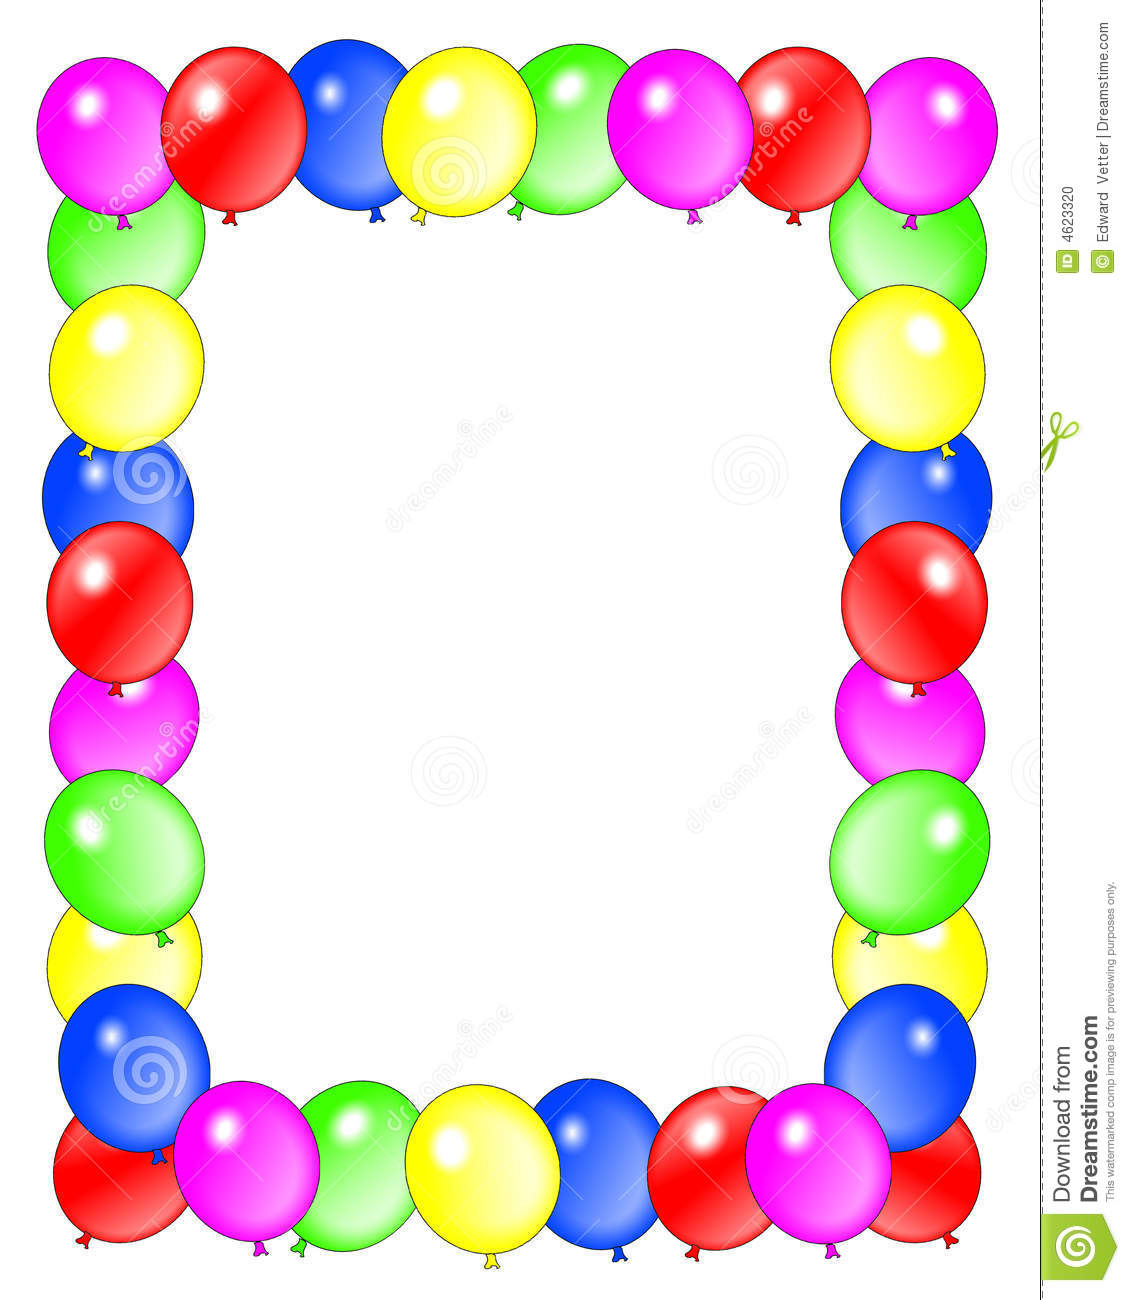 Free Birthday Clip Art Borders.